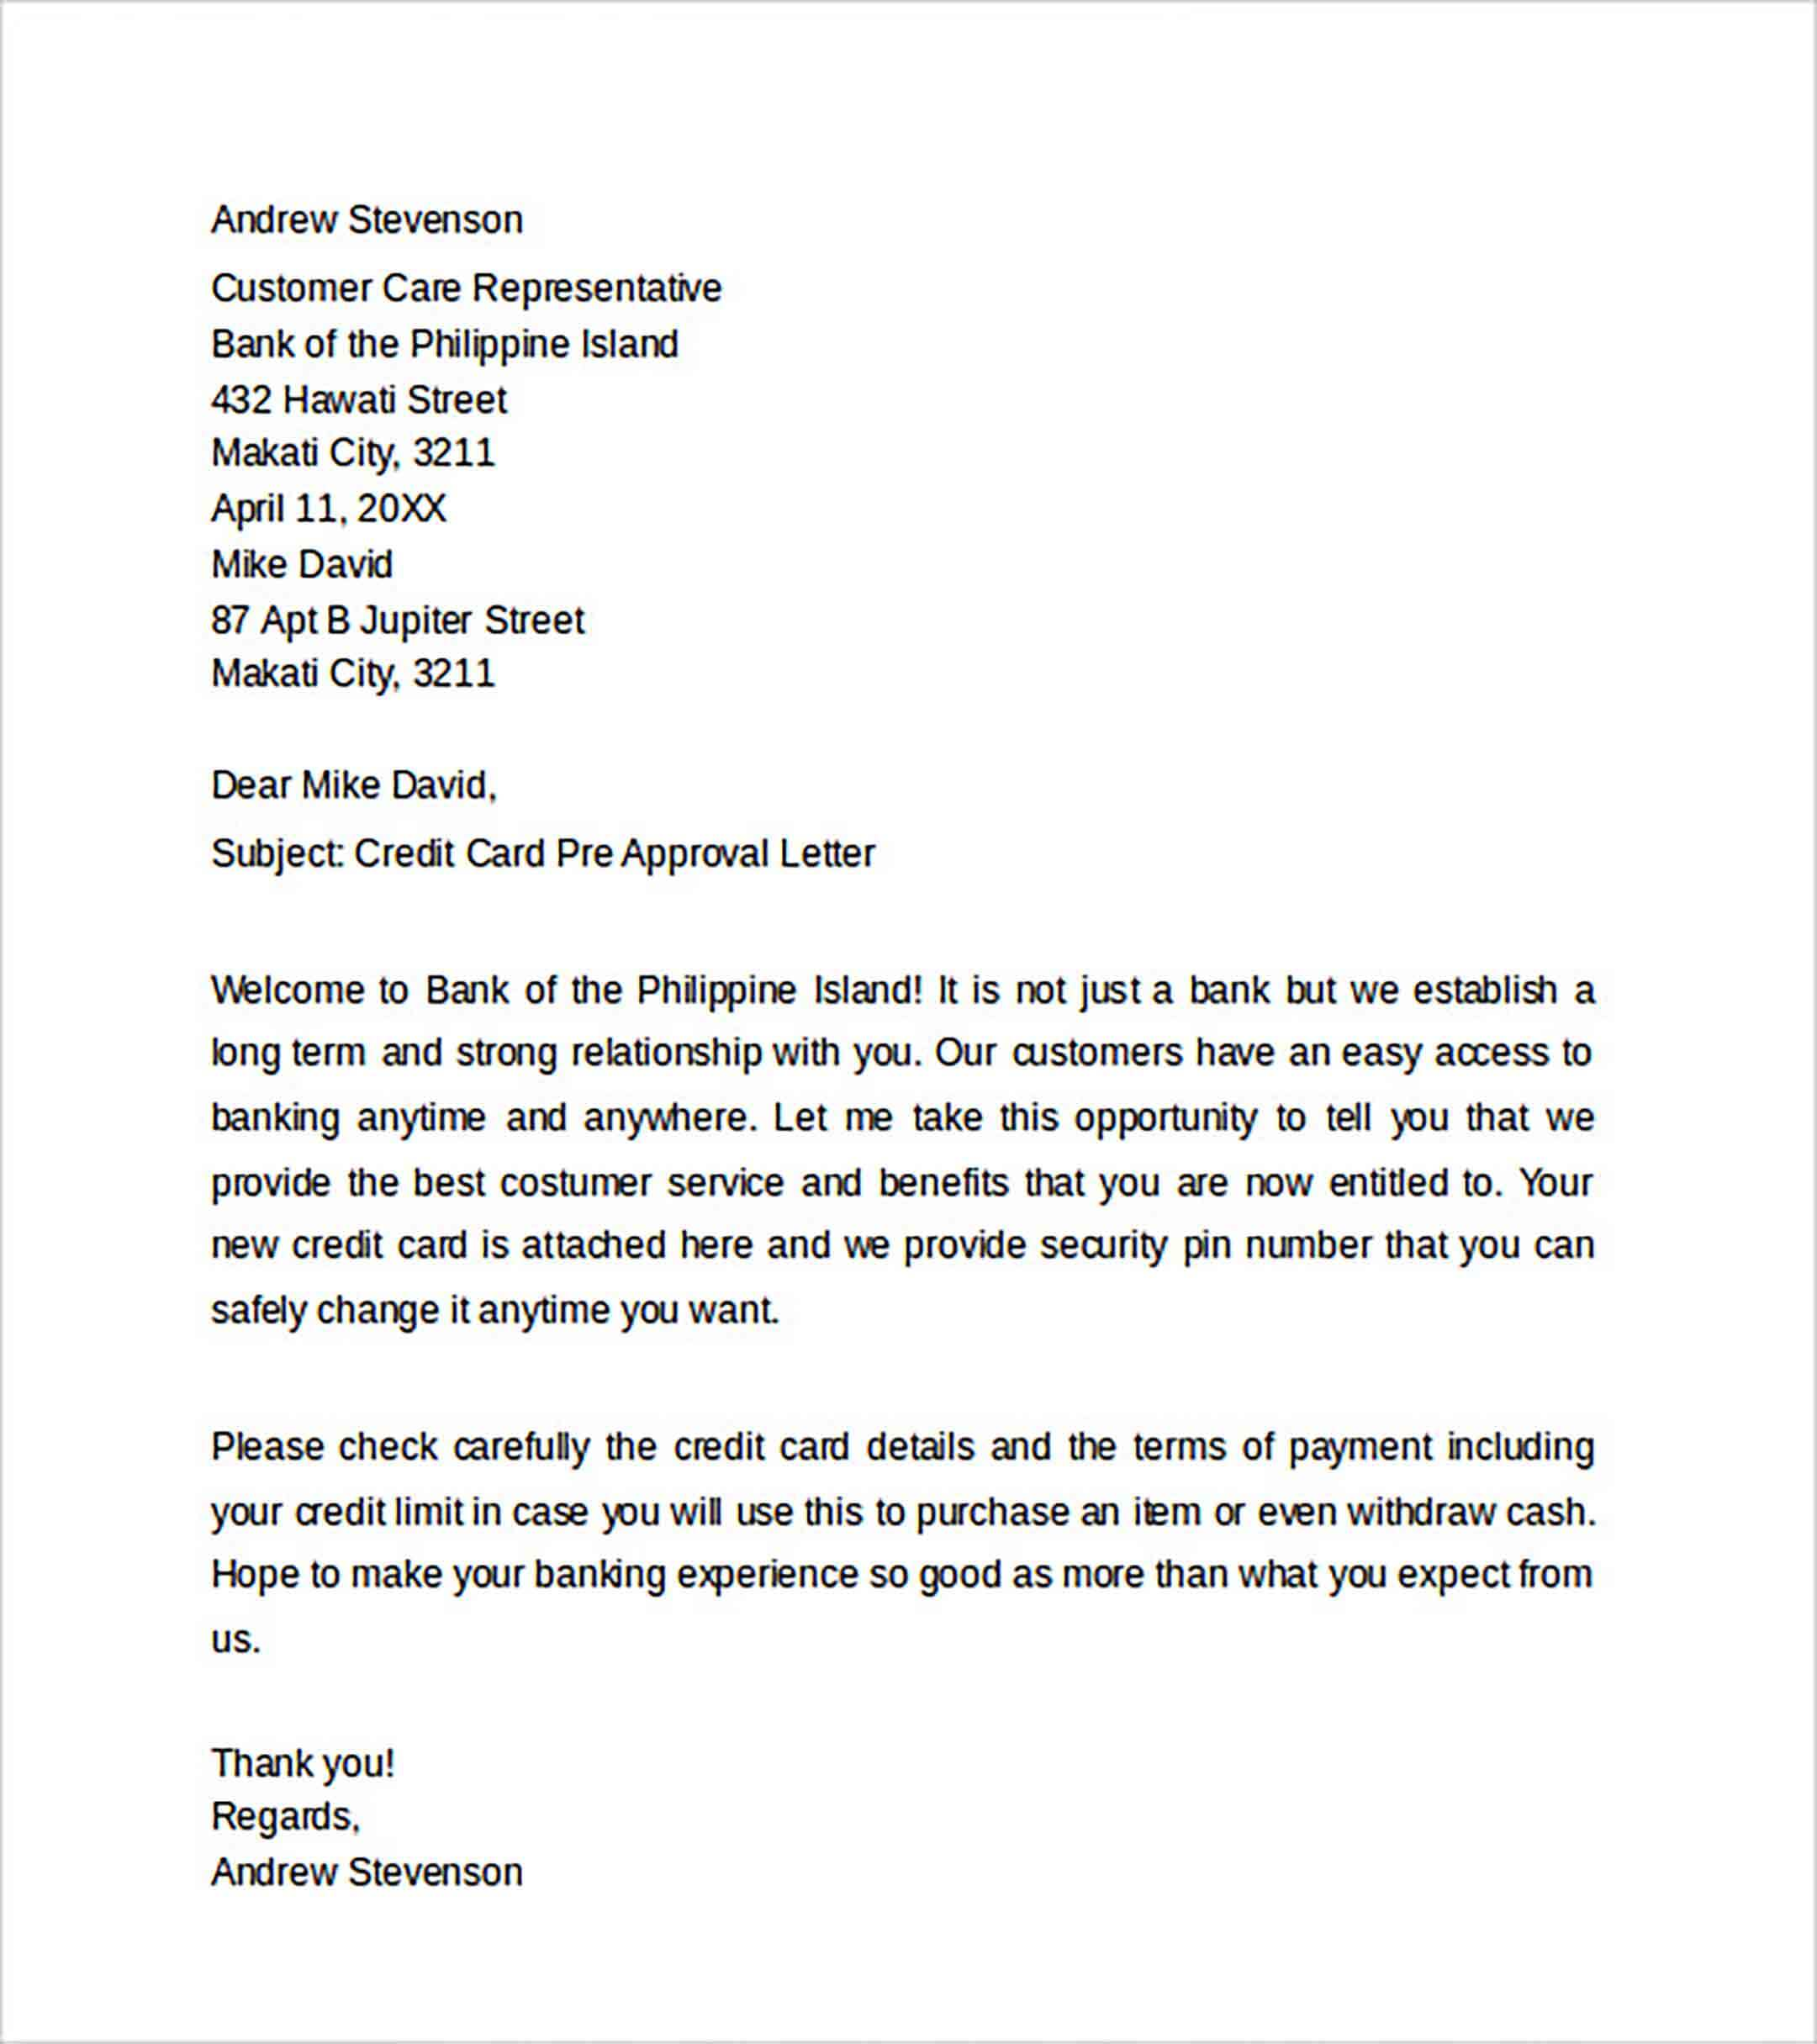 Credit Card Pre Approval Letter